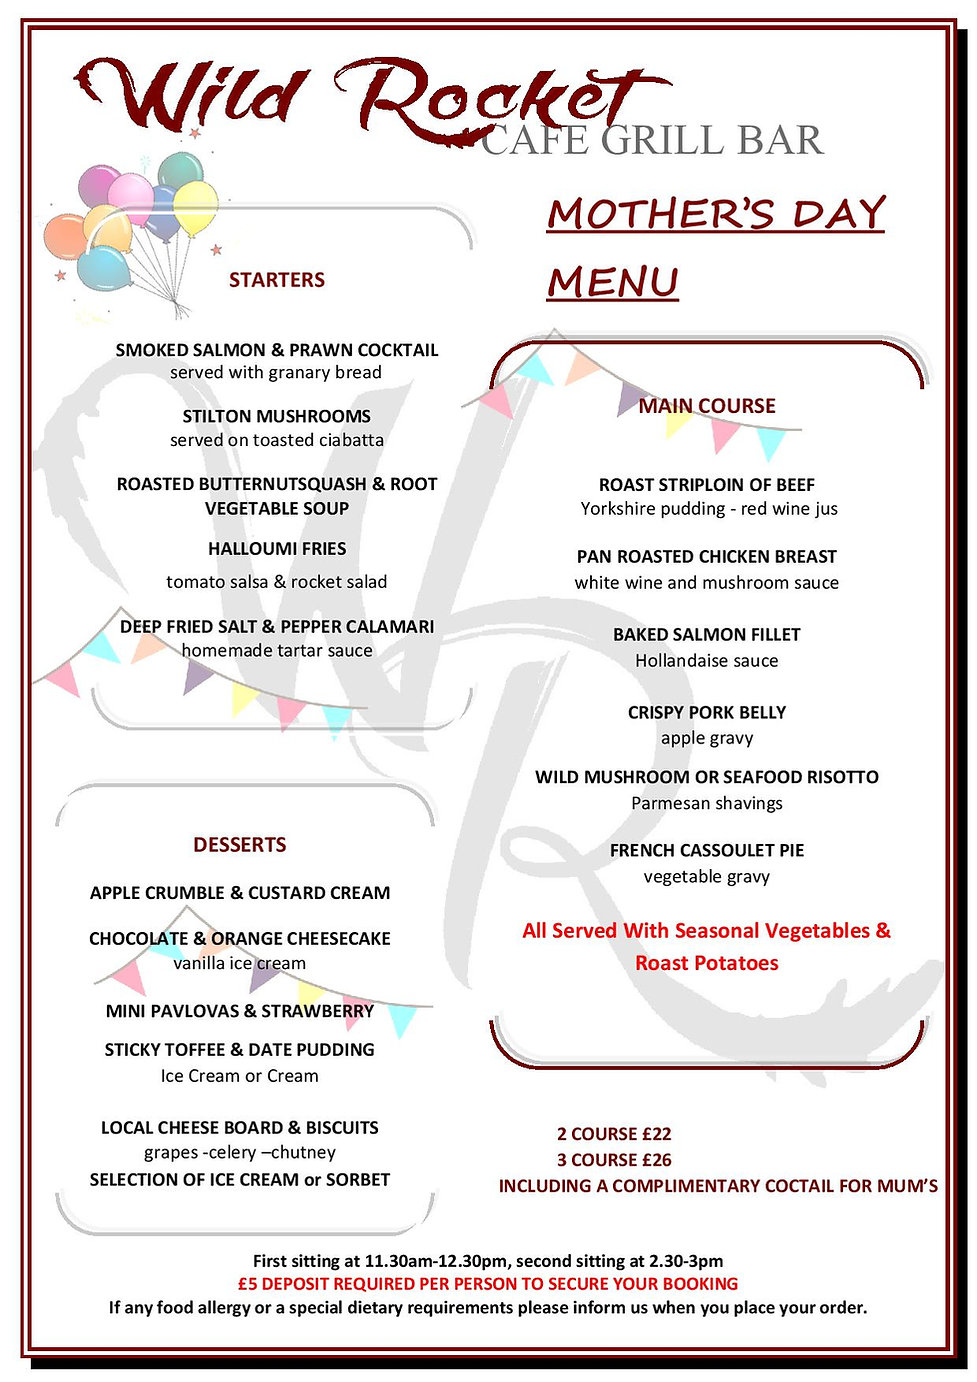 MOTHER S DAY MENU 2020-page-001.jpg